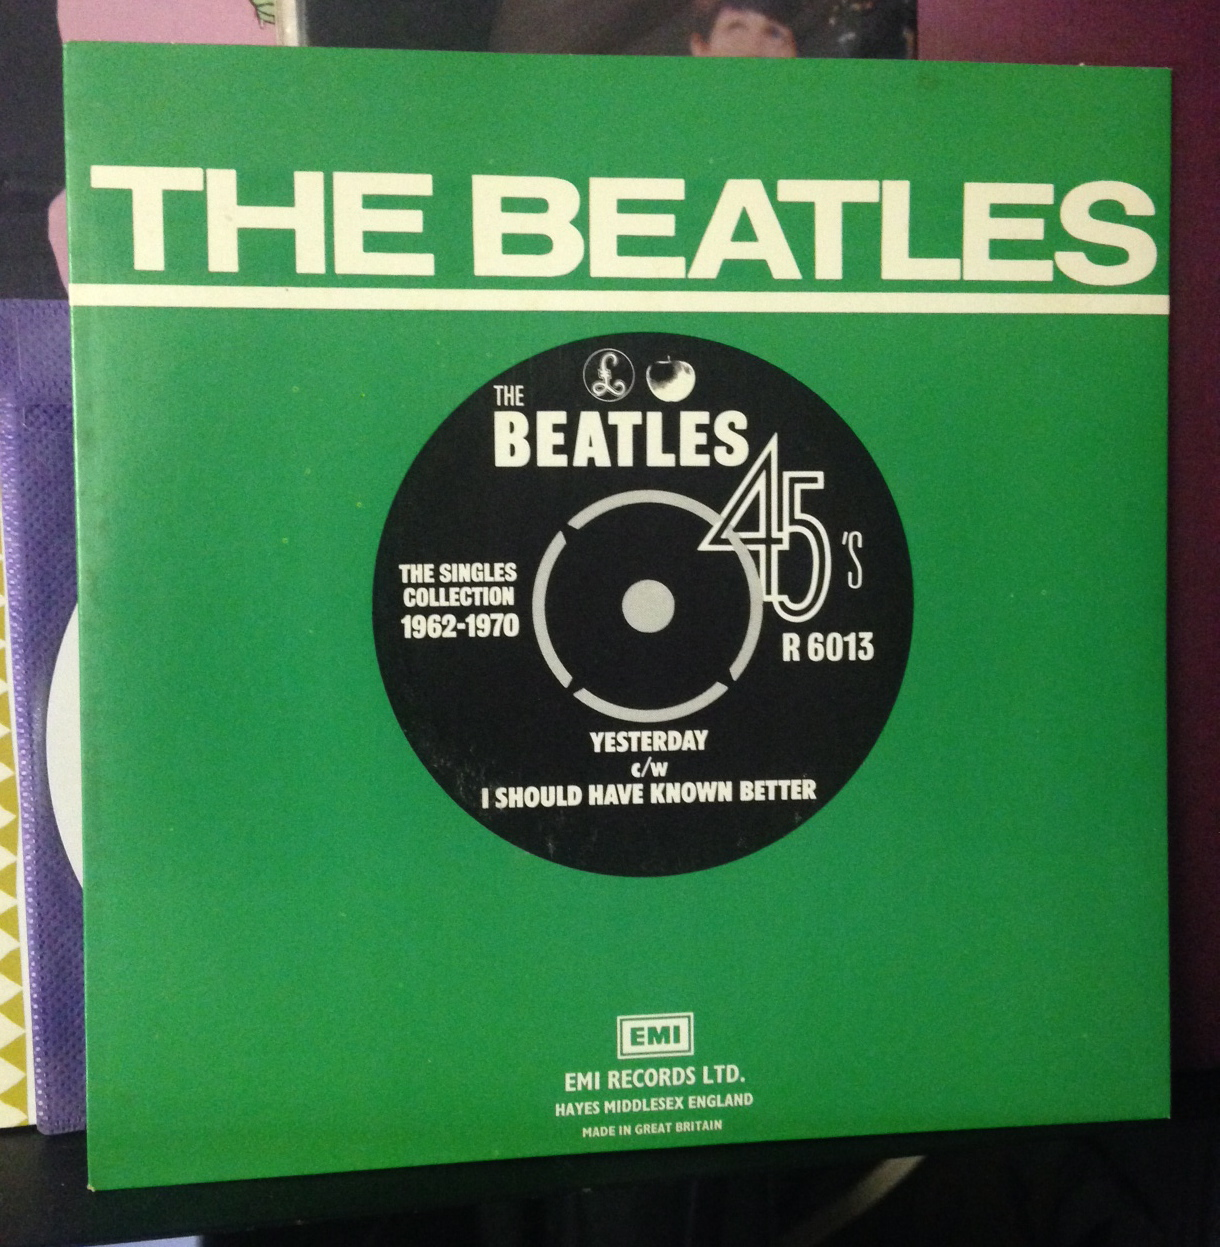 the beatles collection box set of 25 39 45s 39. Black Bedroom Furniture Sets. Home Design Ideas